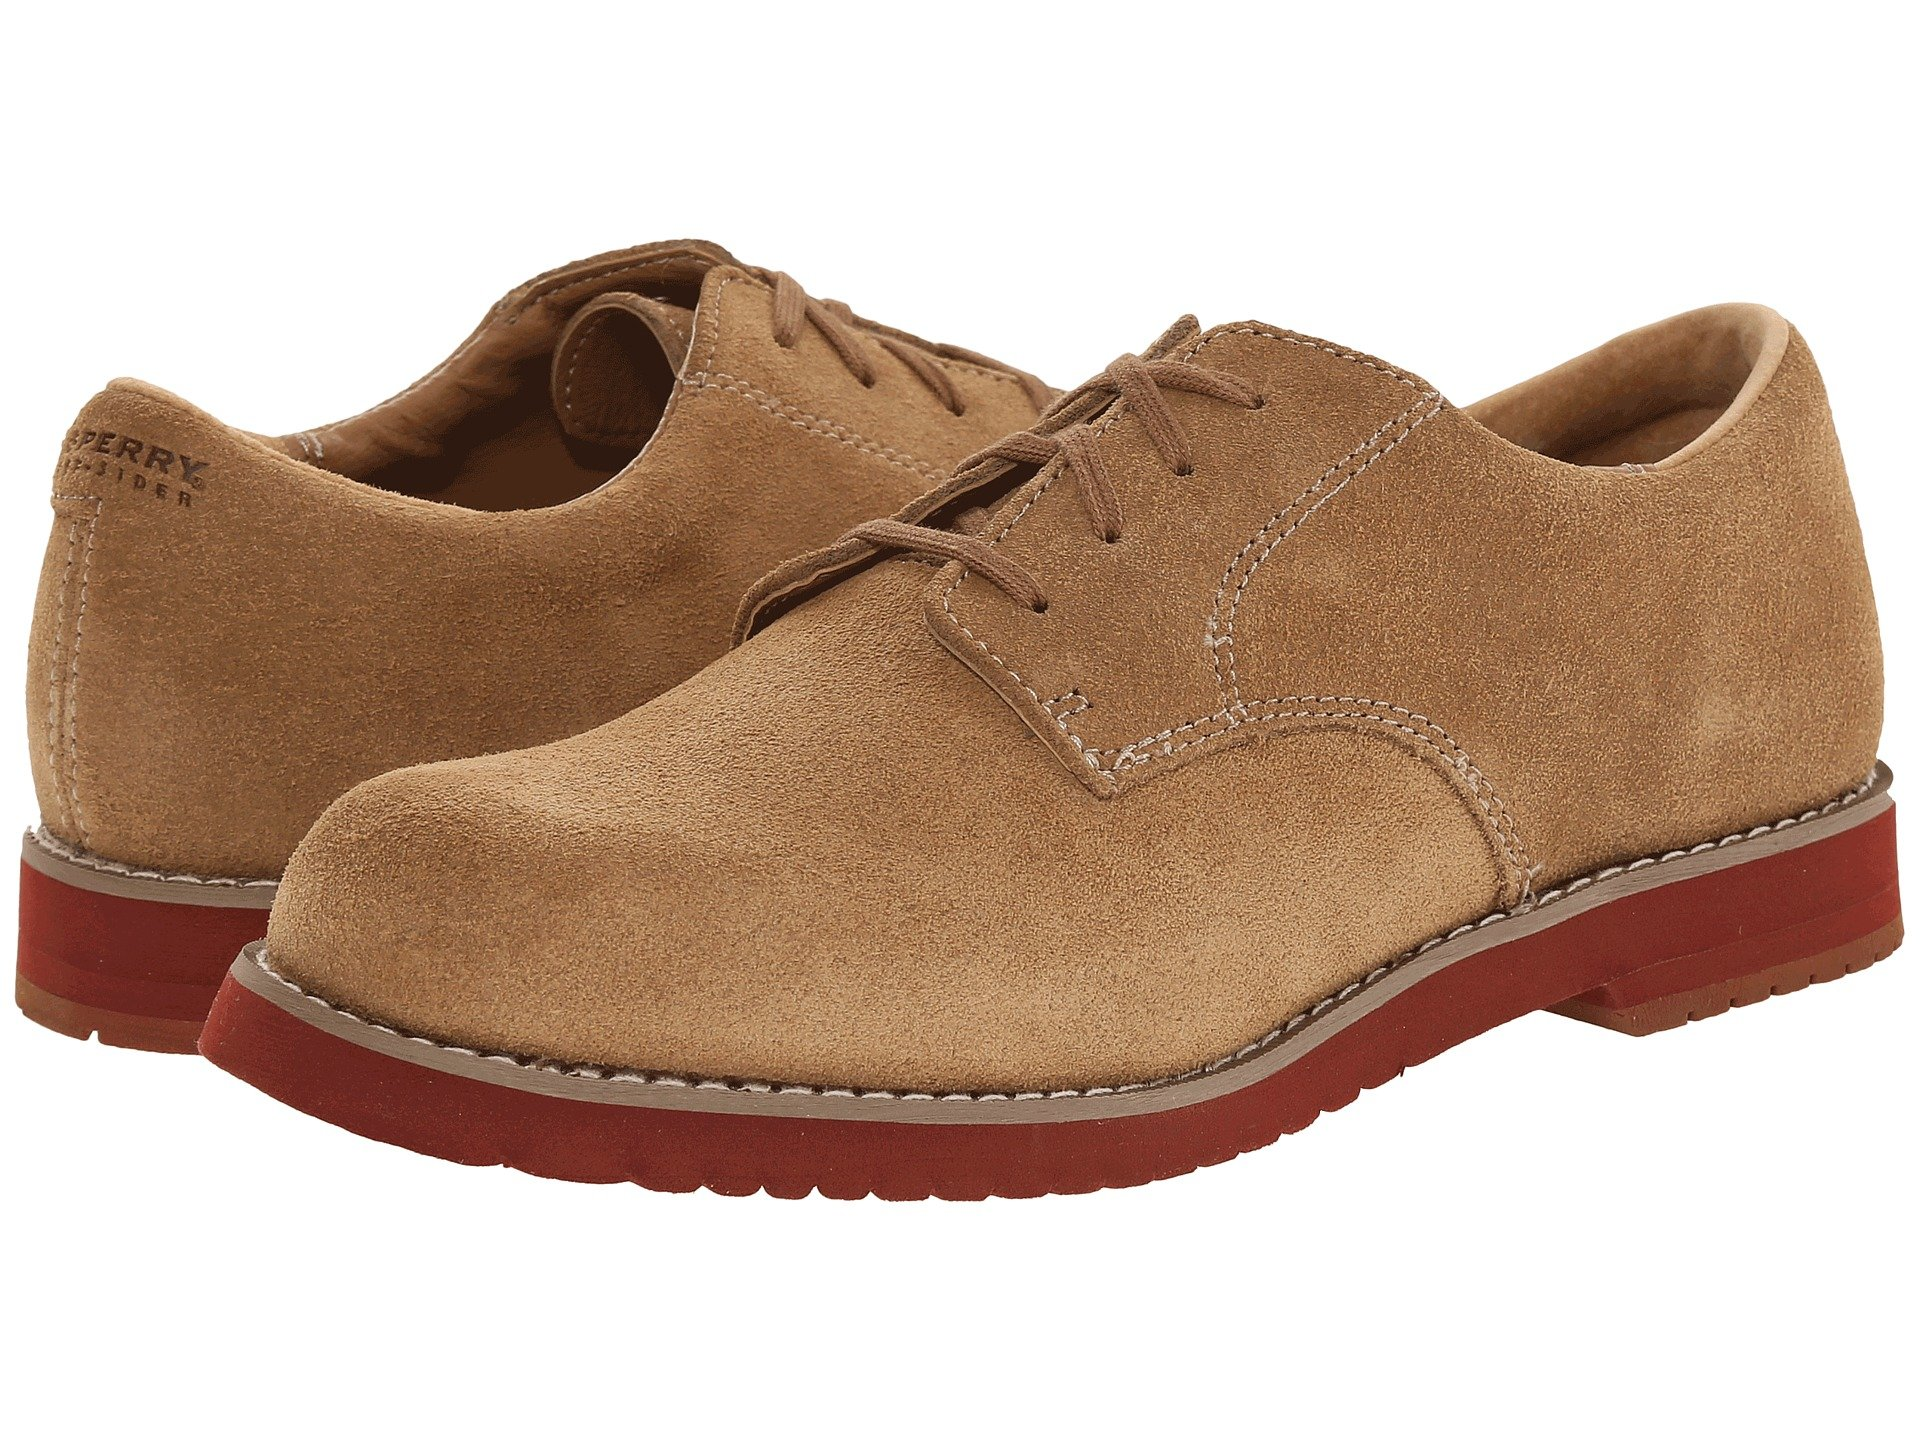 00780c7204c3eb New Dirty Buck Suede. 650. Sperry Kids